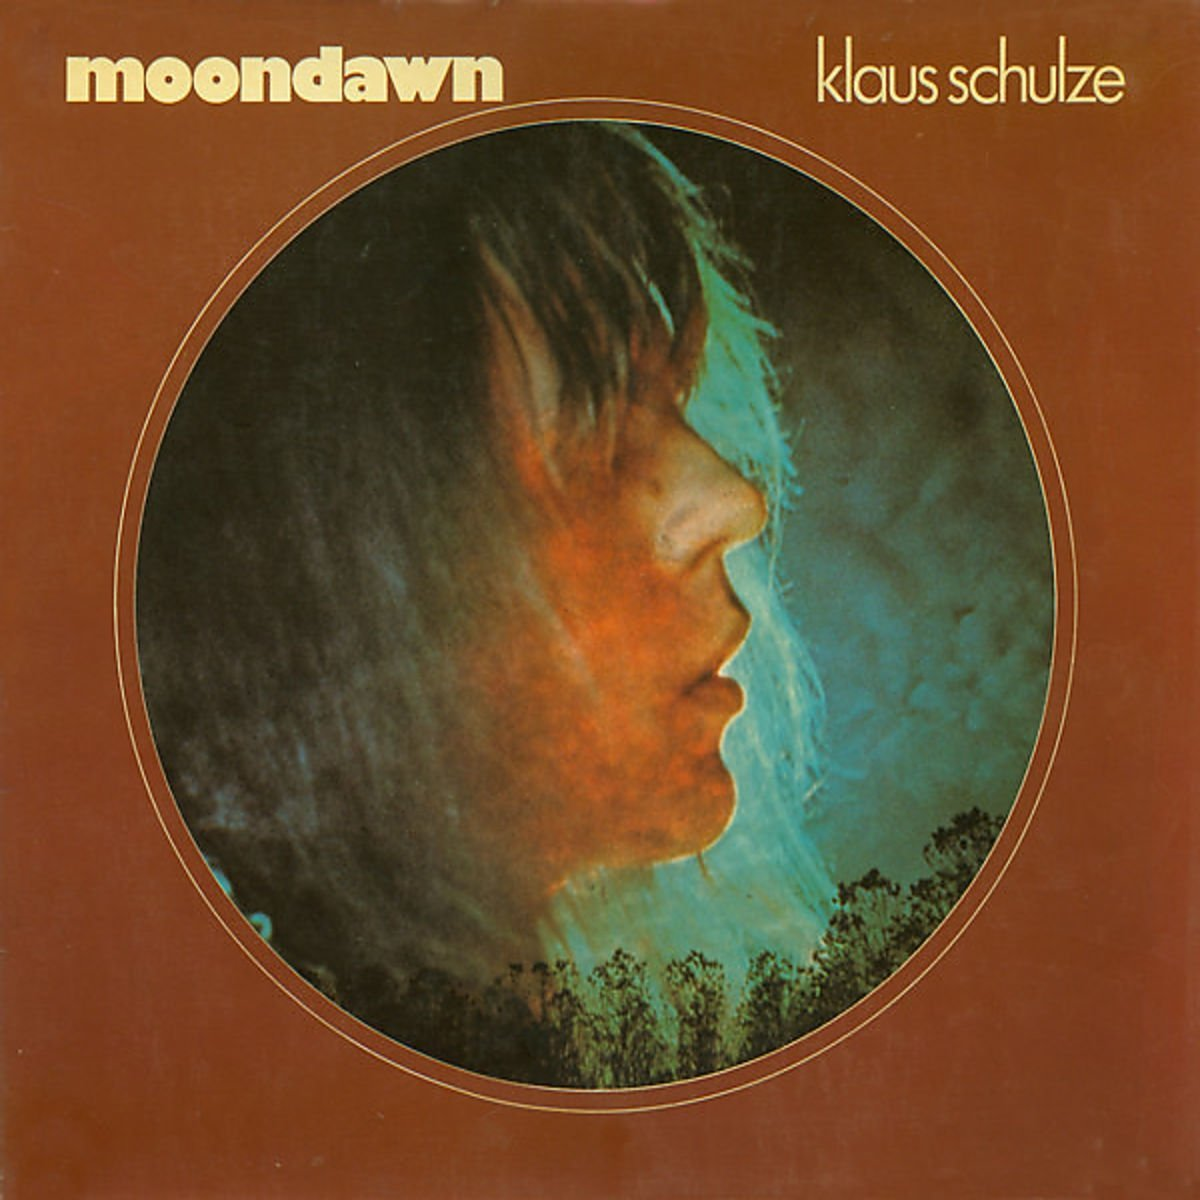 Moondawn - Vinyl